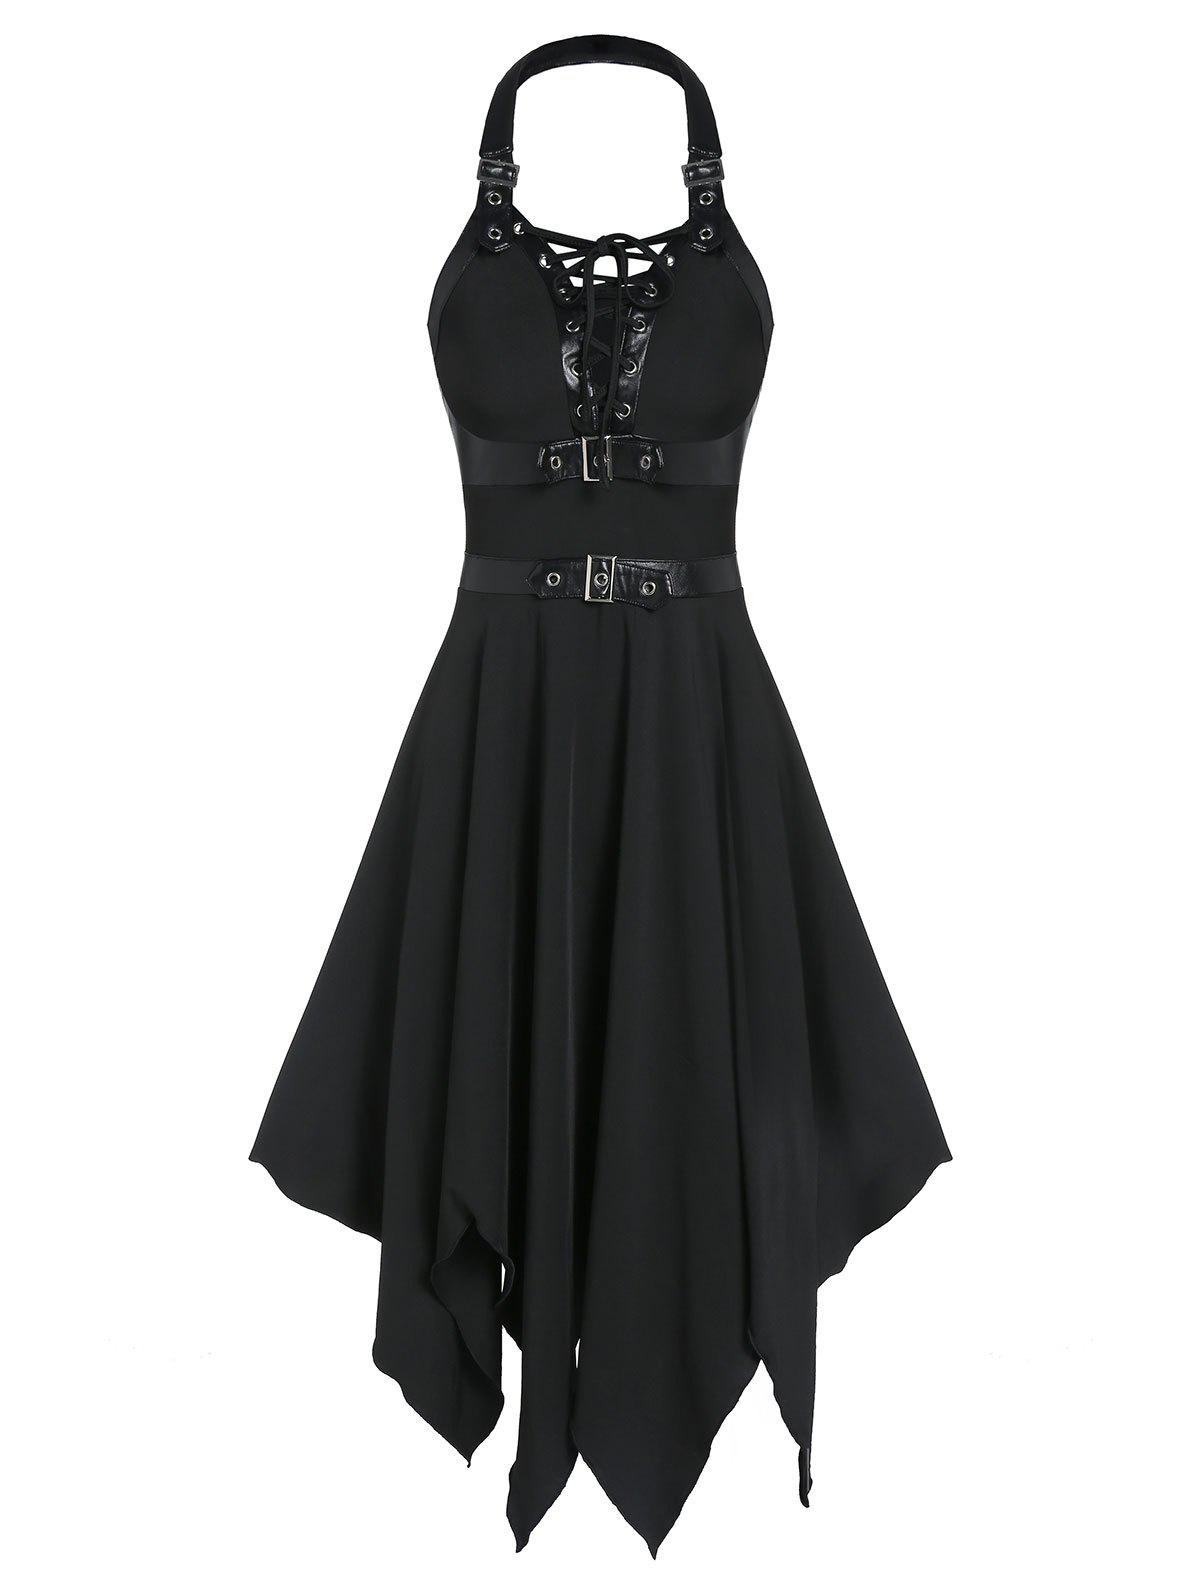 Latest Buckle Strap Cut Out Lace-up Handkerchief Gothic Dress